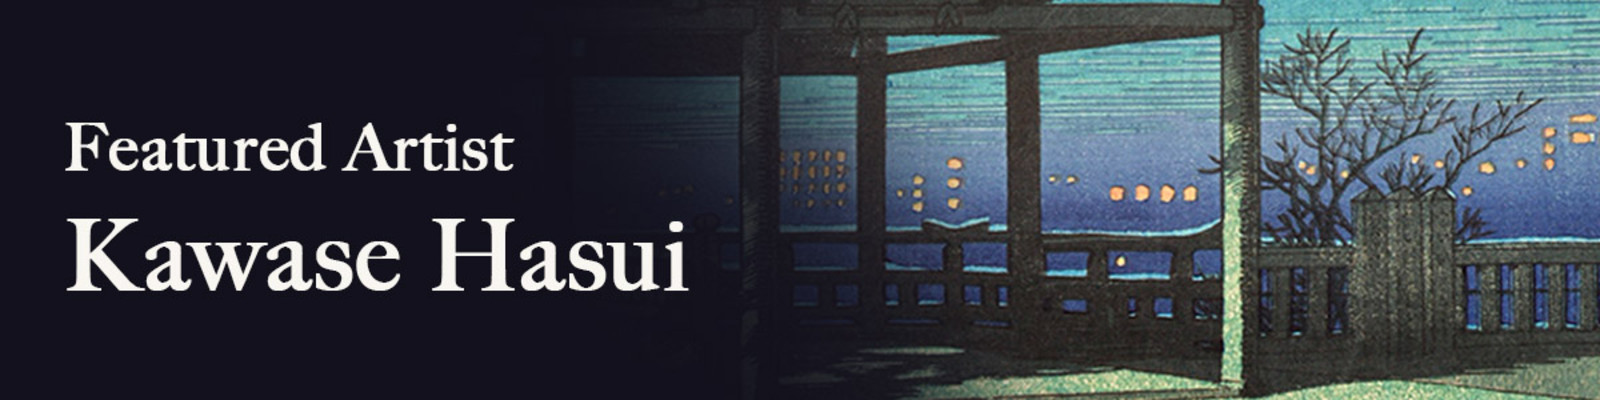 Featured Artist: Hasui